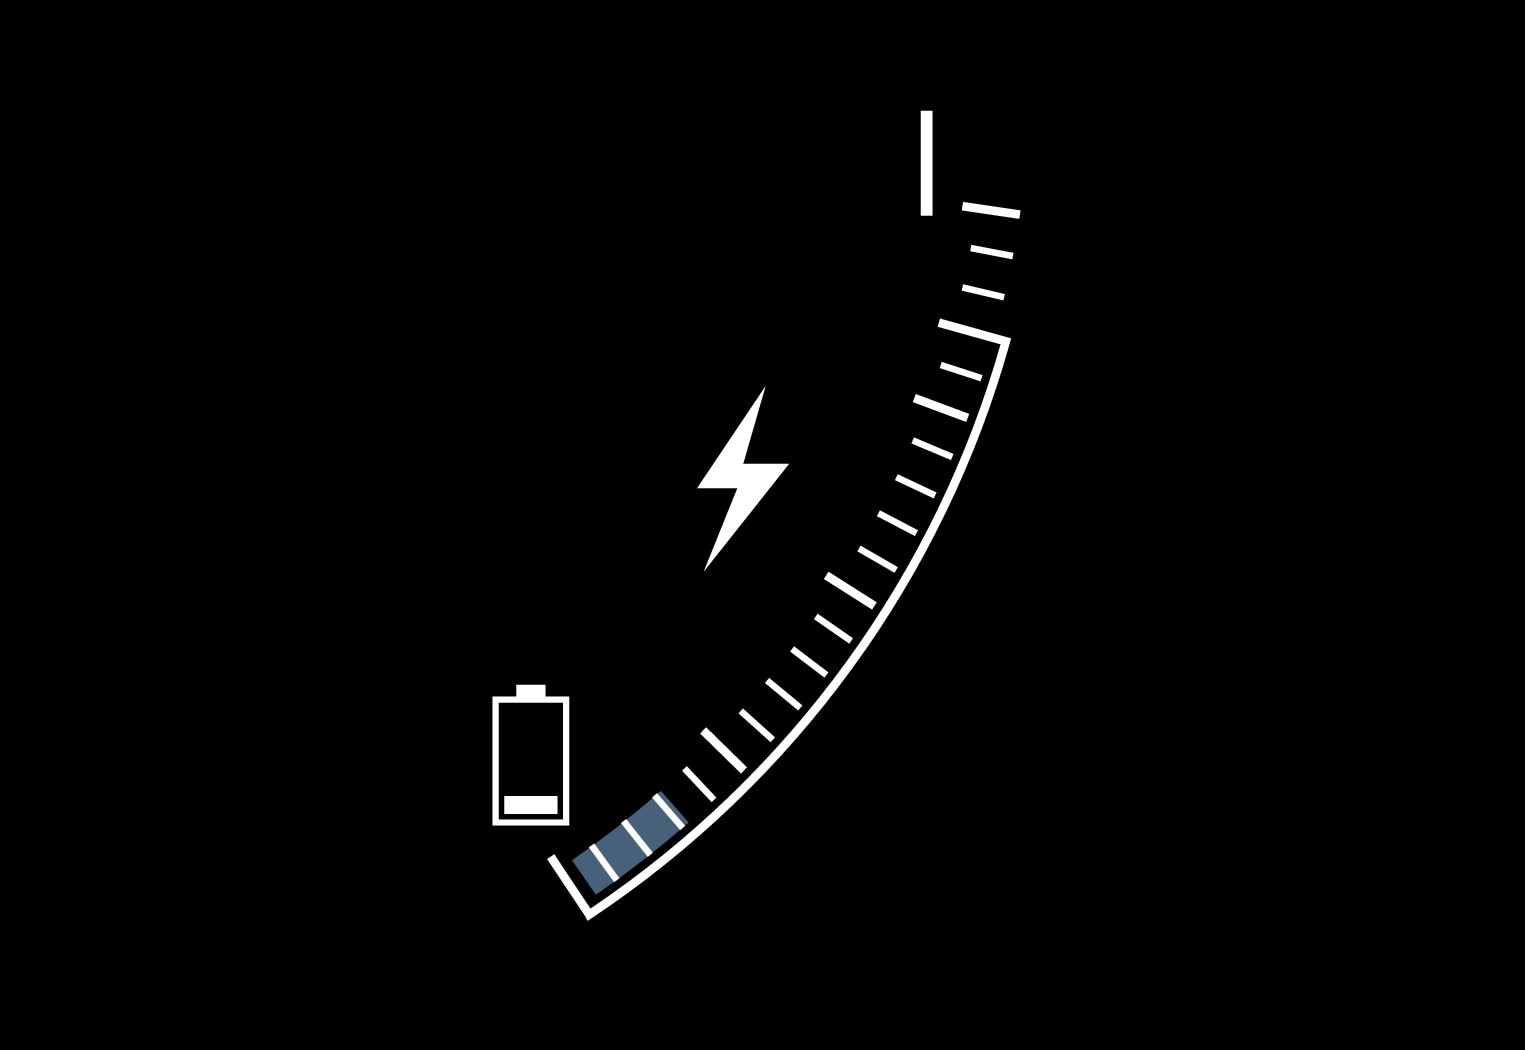 P5-1717-XC60H-CHARGE symbol in hybrid battery gauge